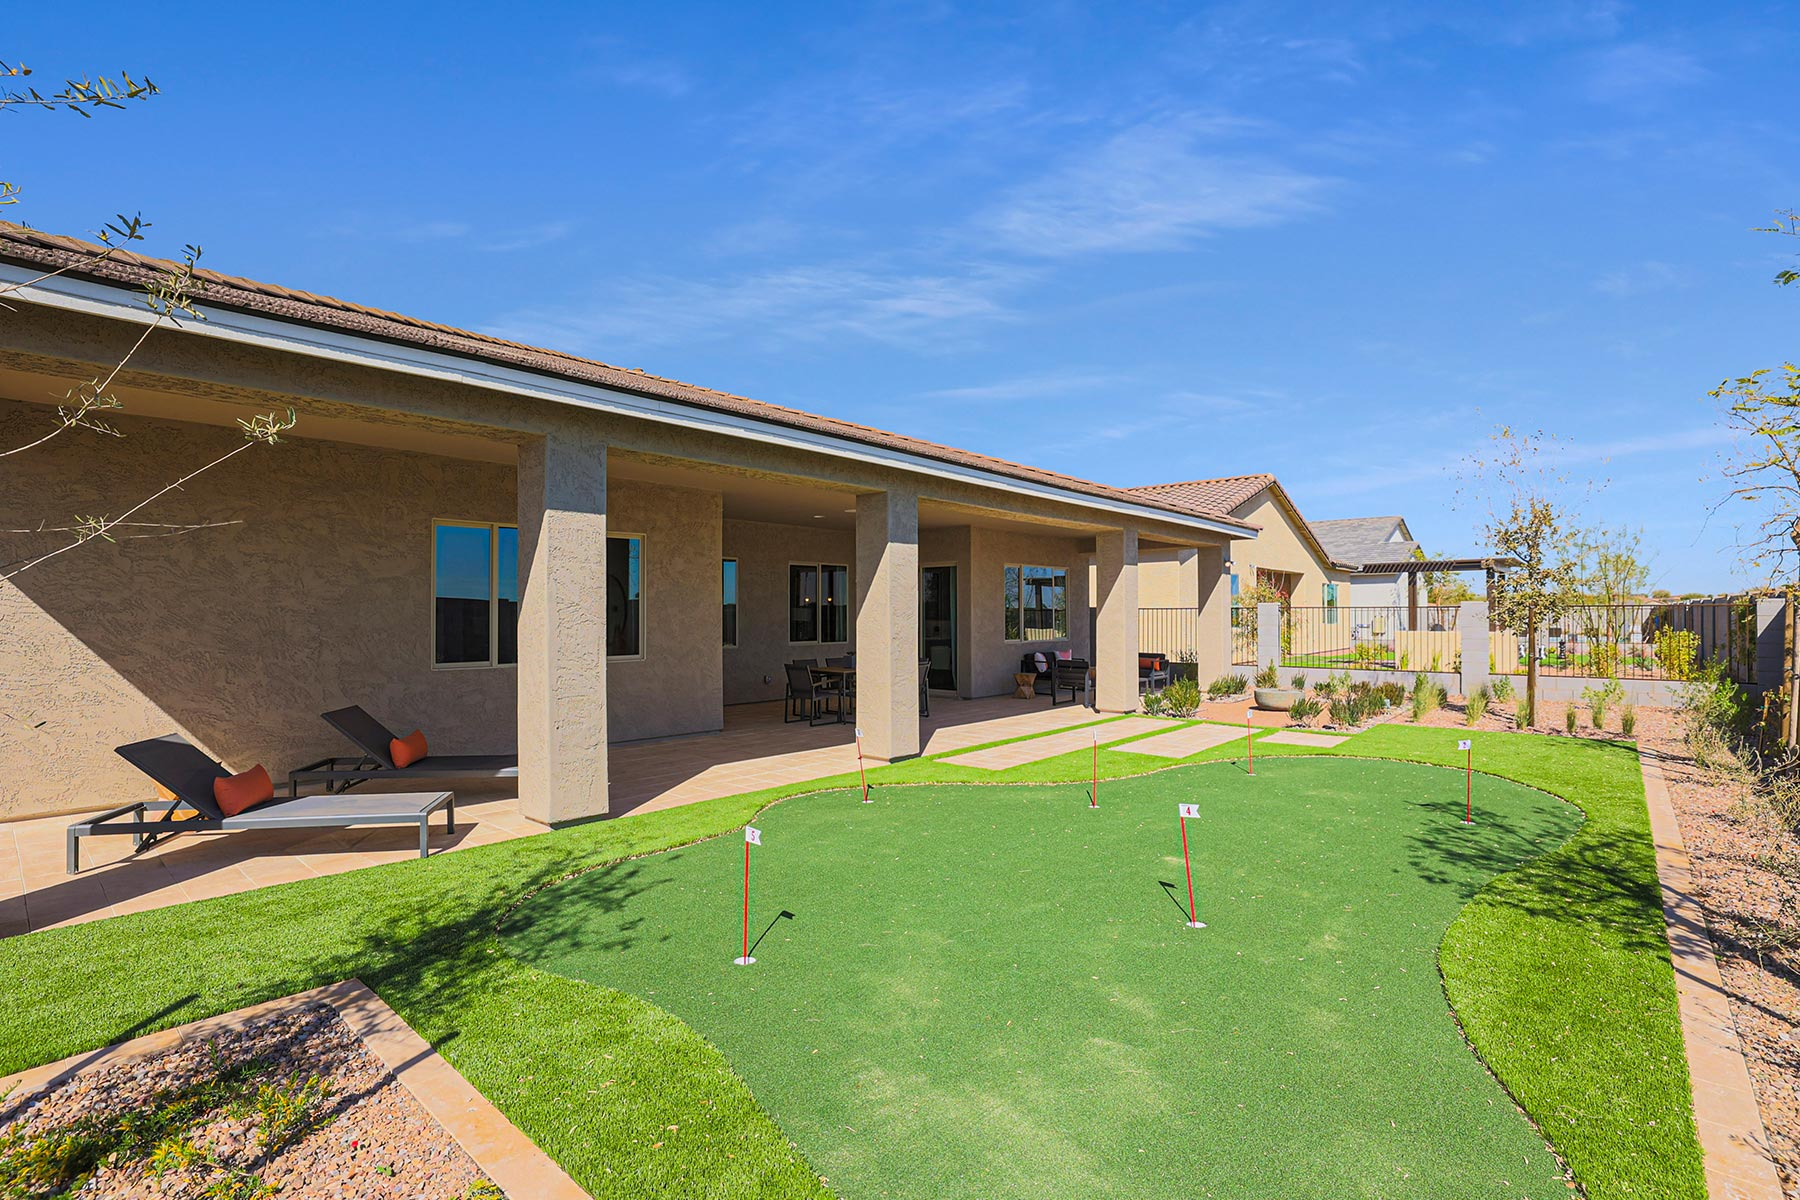 Castleton Plan MATPHX_AZC_Castleton_BY2_1800x1200 at Azure Canyon in Litchfield Park Arizona by Mattamy Homes